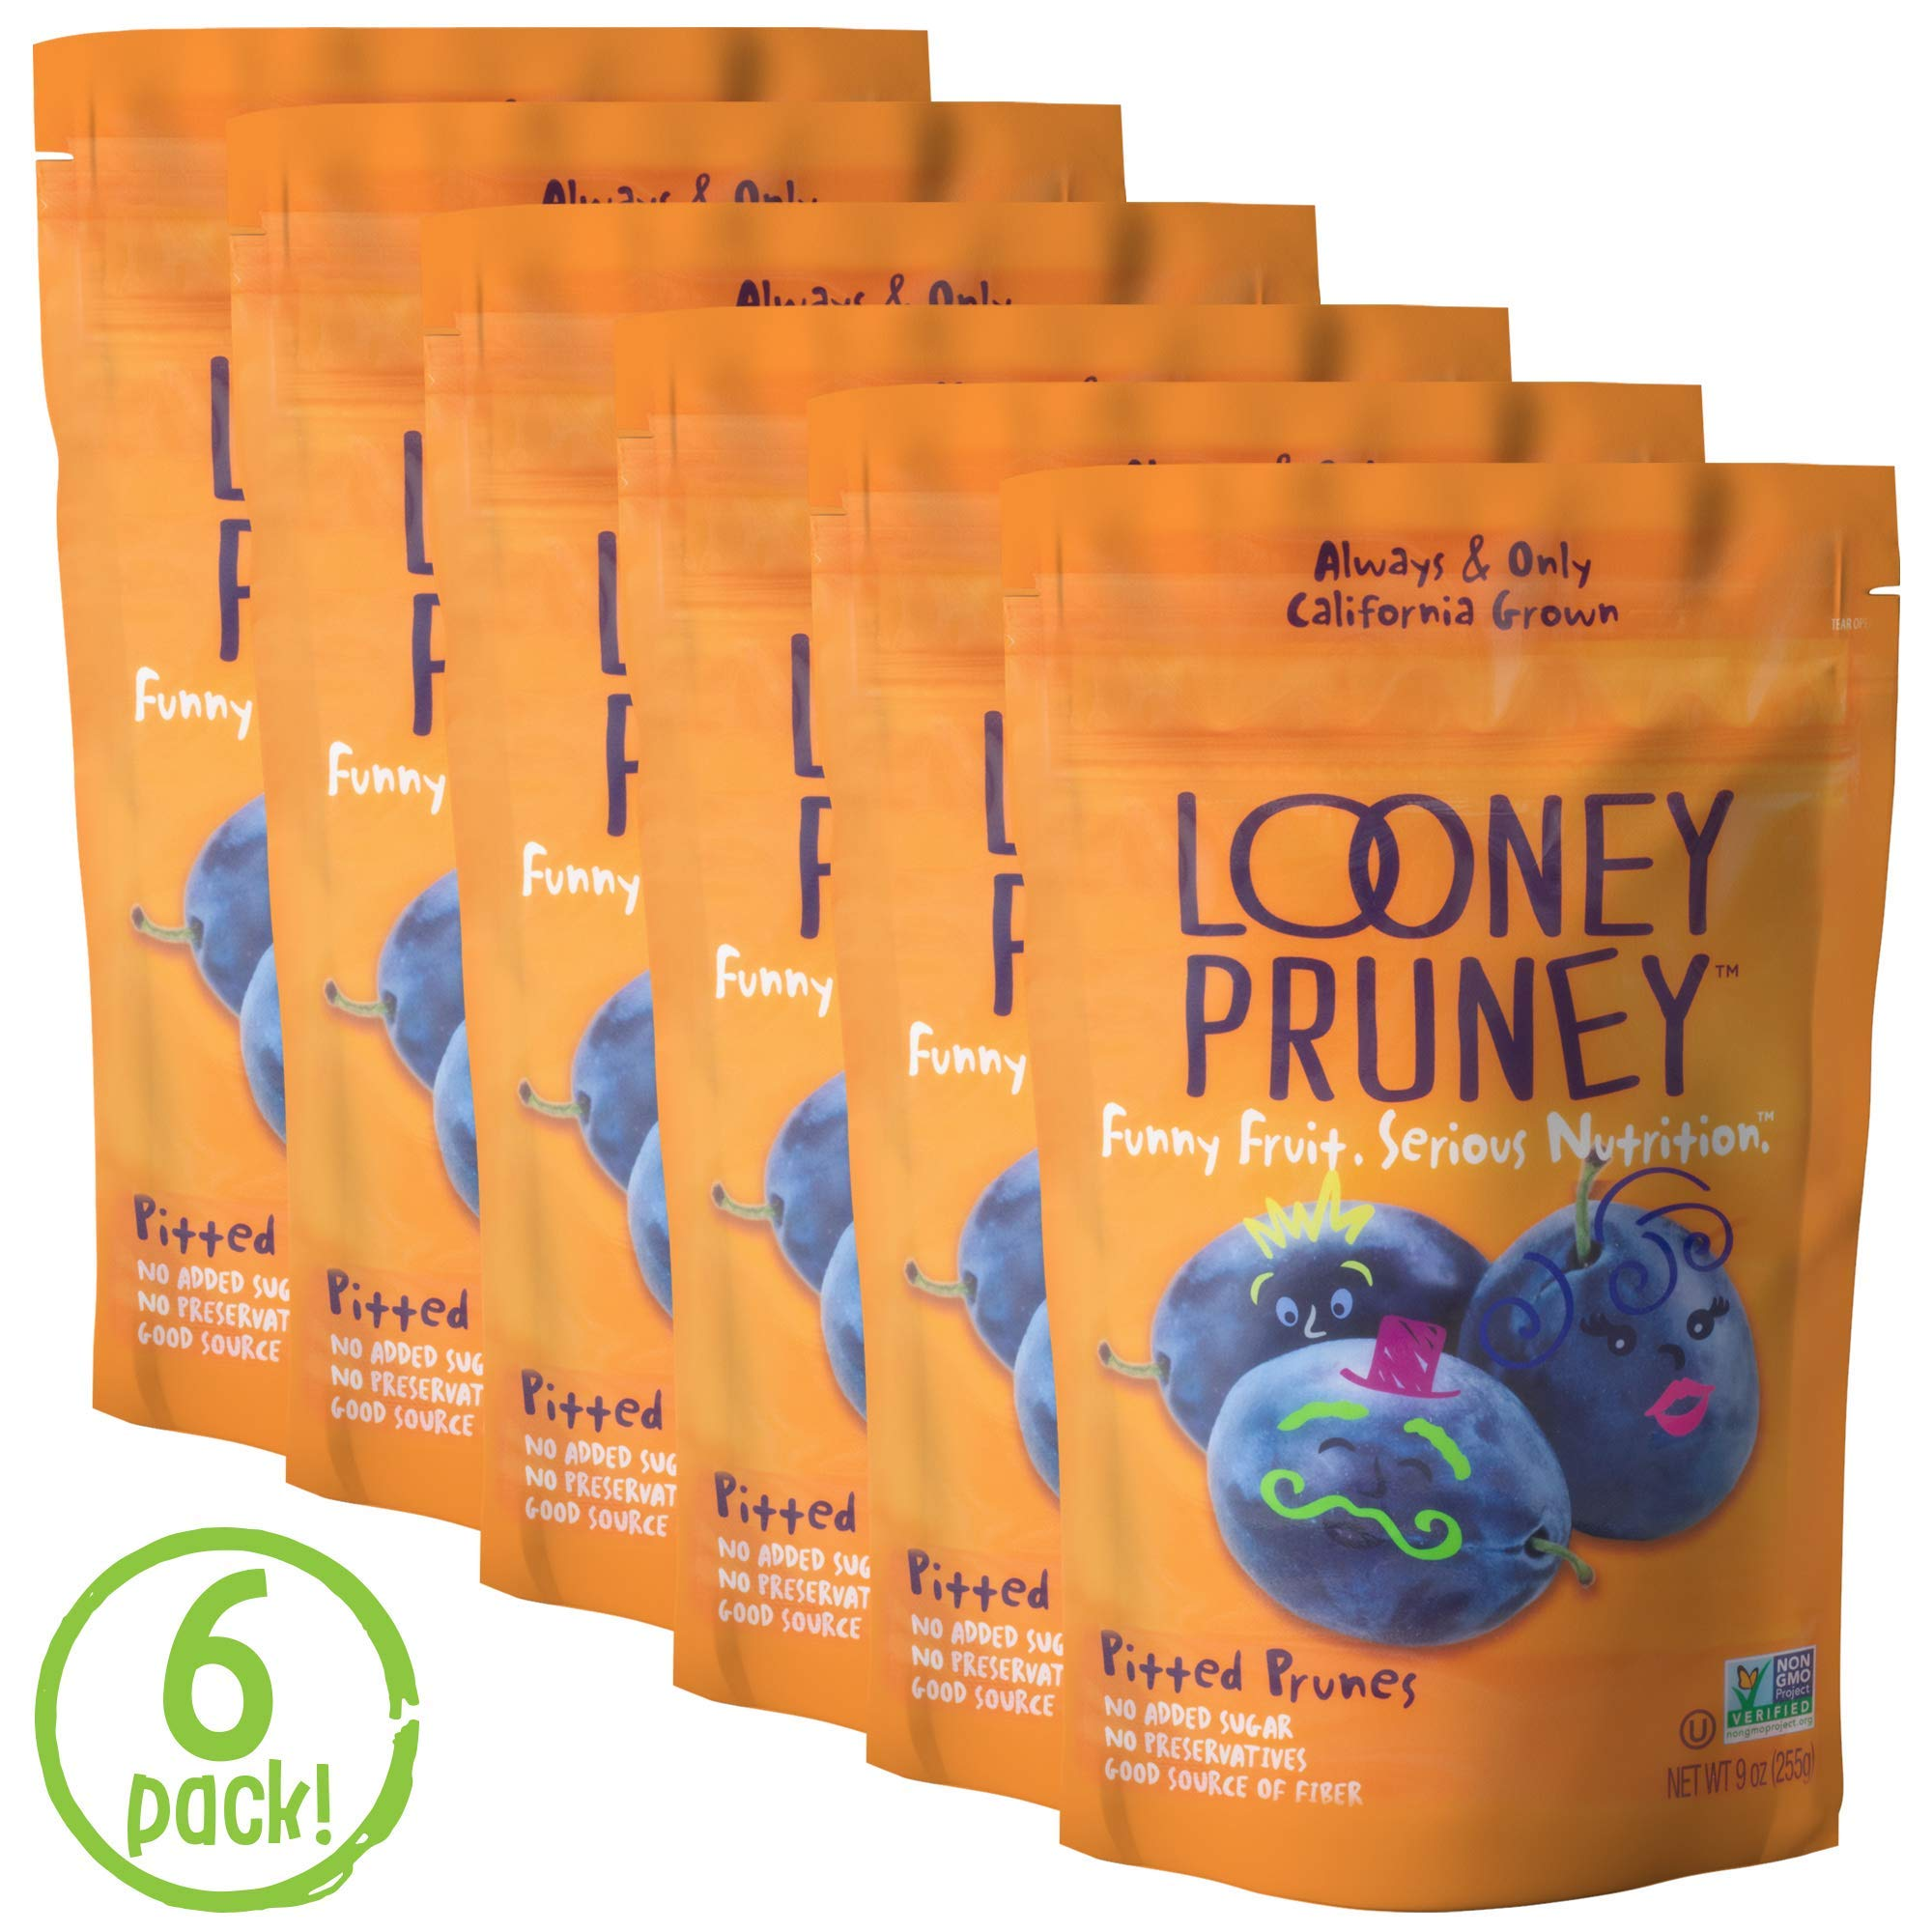 Looney Pruney California Pitted Prunes / Non-GMO Project Verified/ Preservative Free (6pack) by Wilbur Packing Company